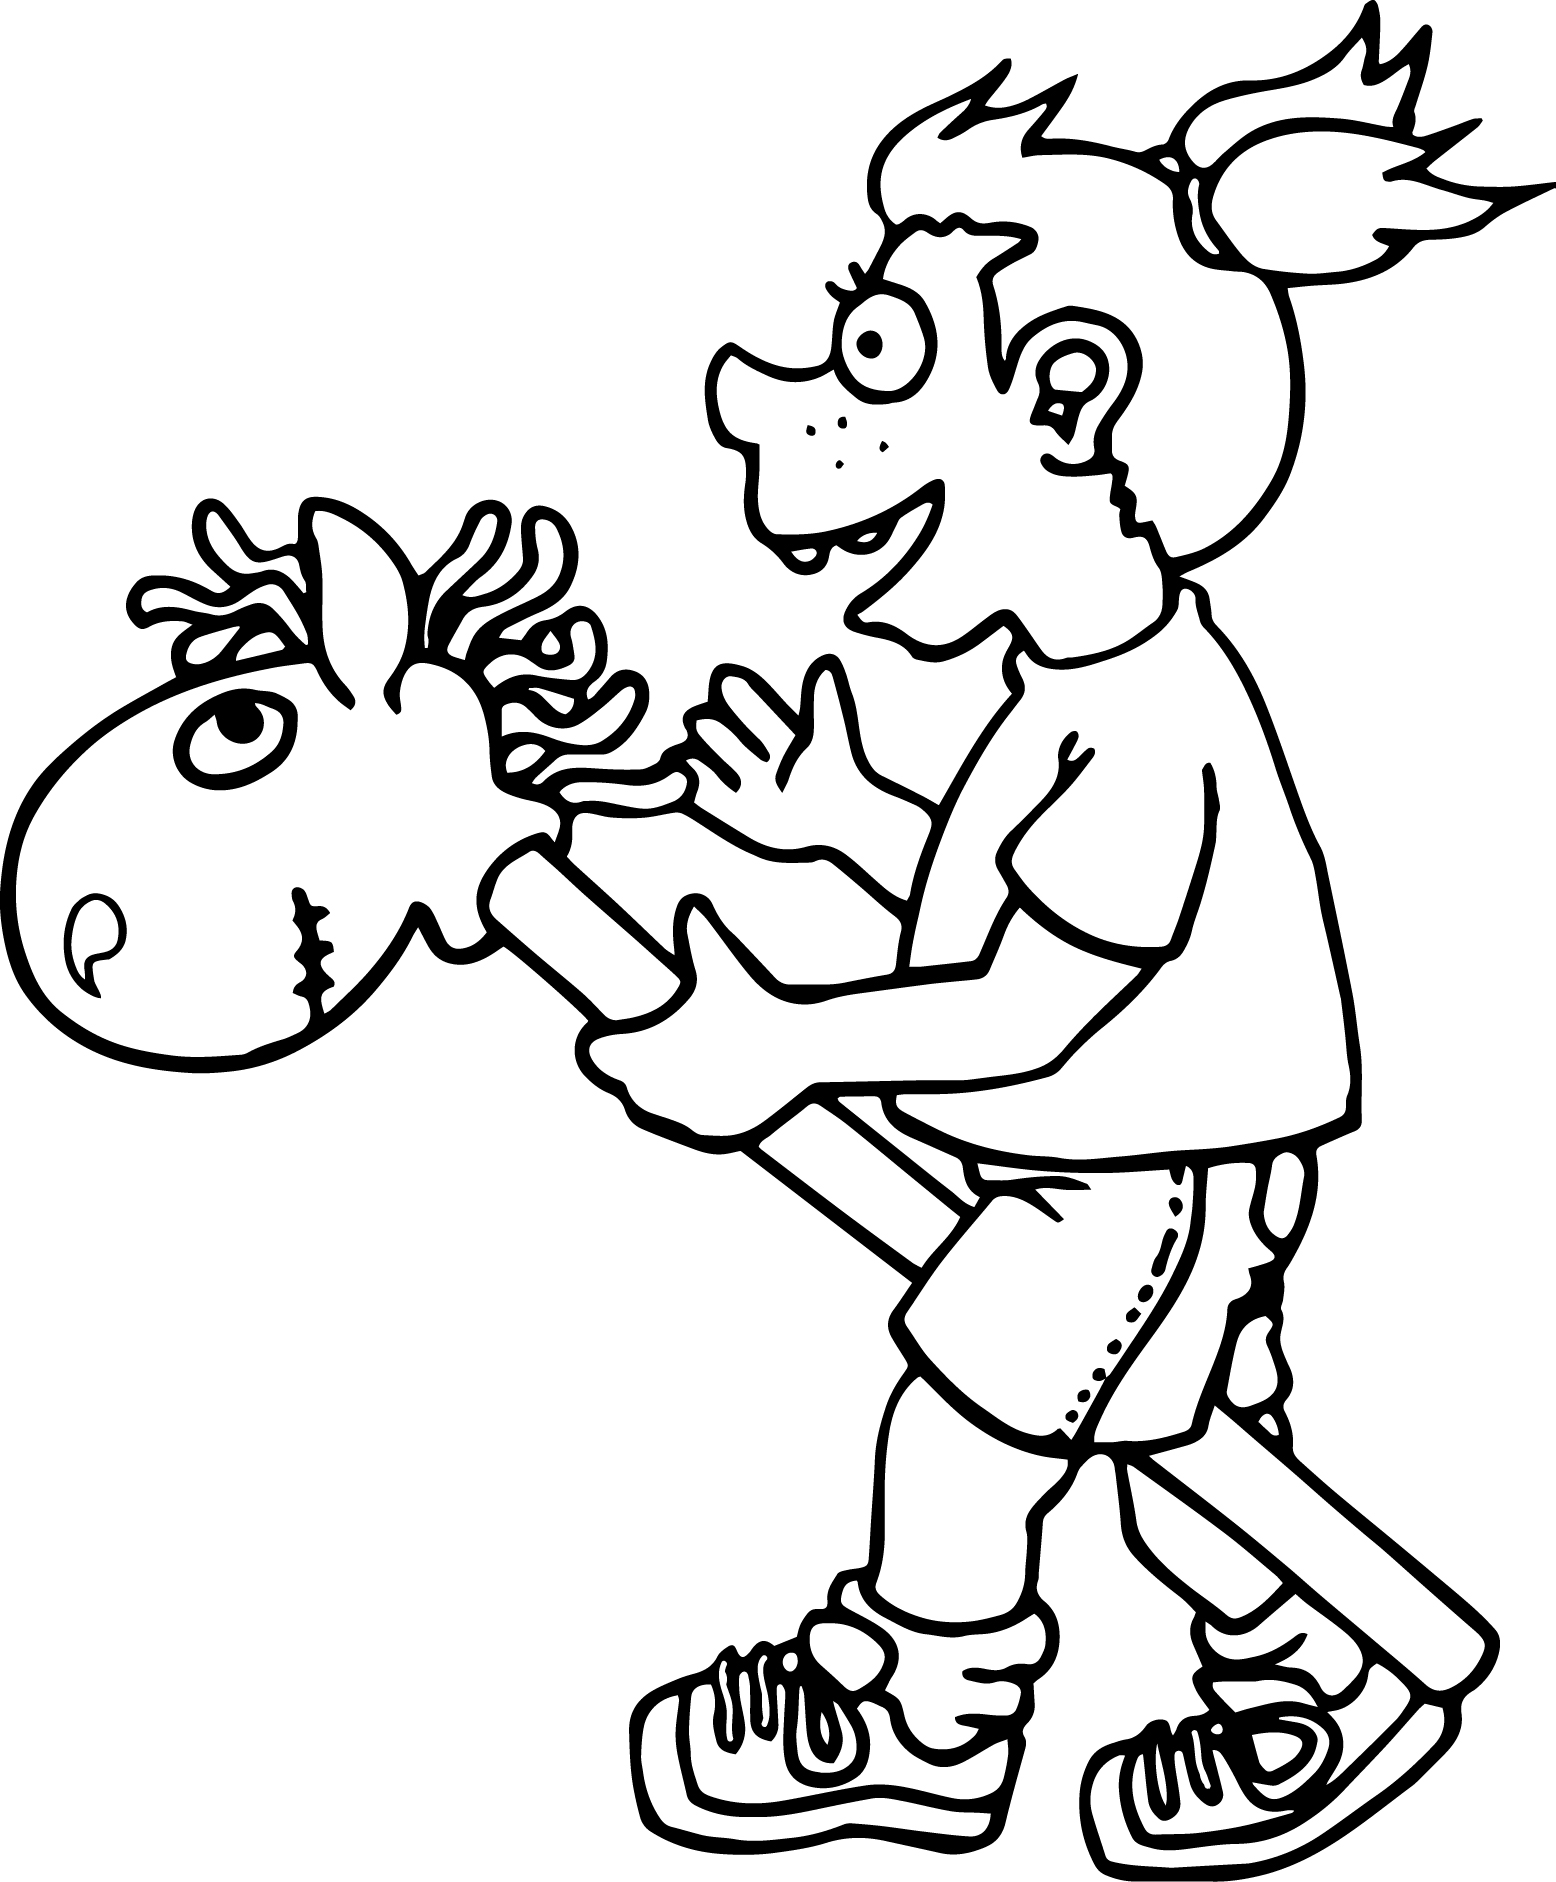 Toy Horse Play Children Coloring Page